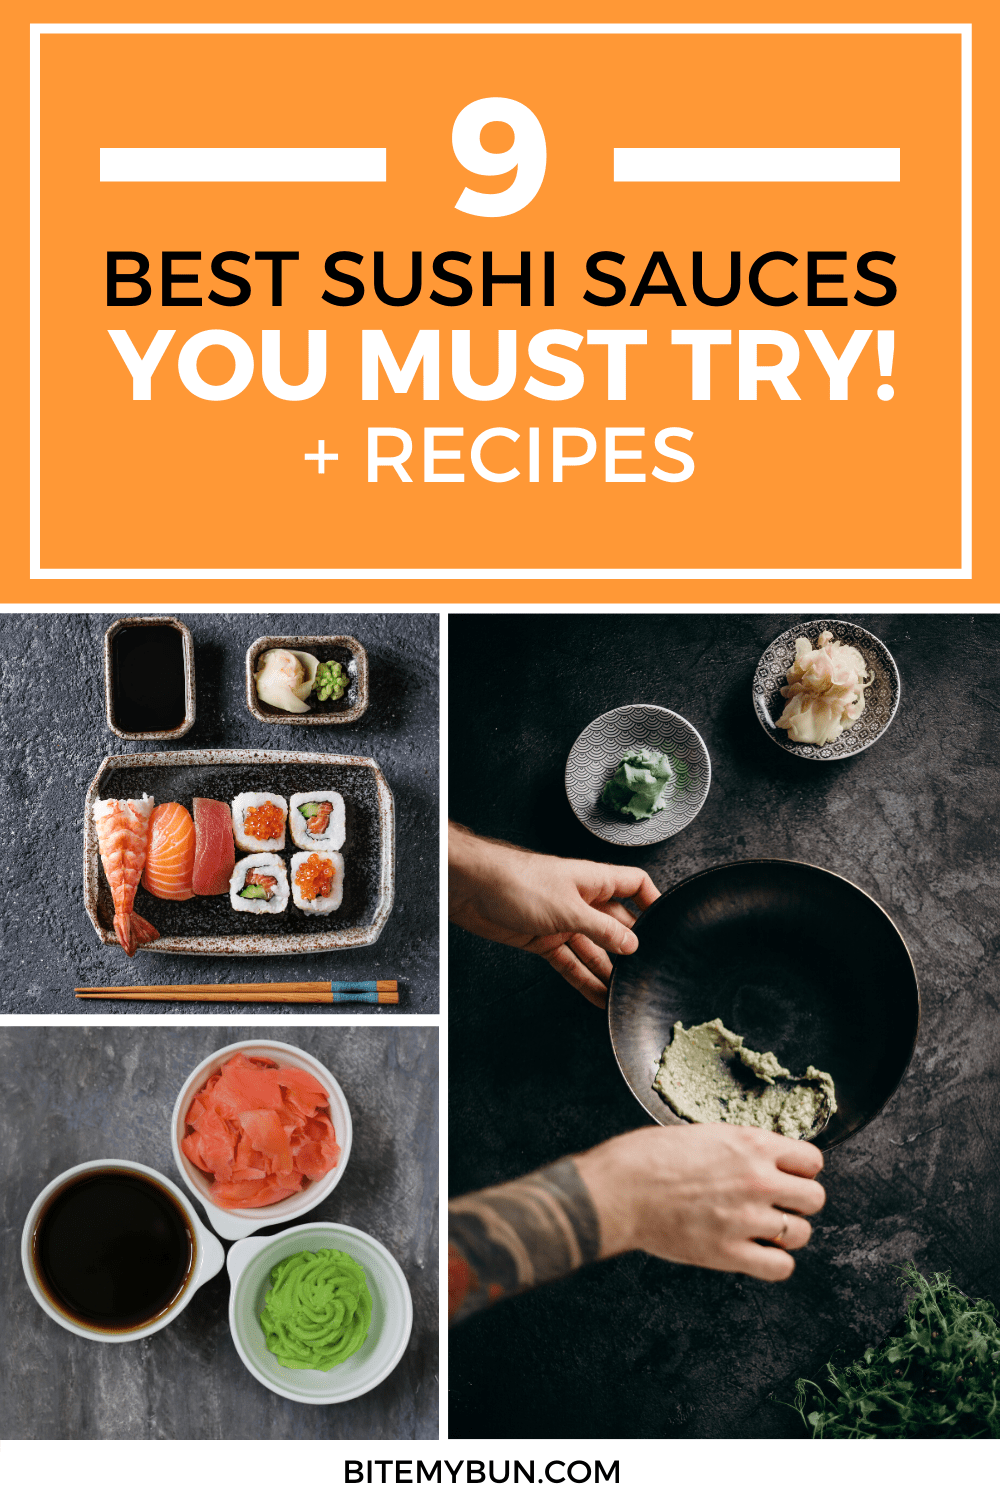 9 Best Sushi Sauces Recipes you must try